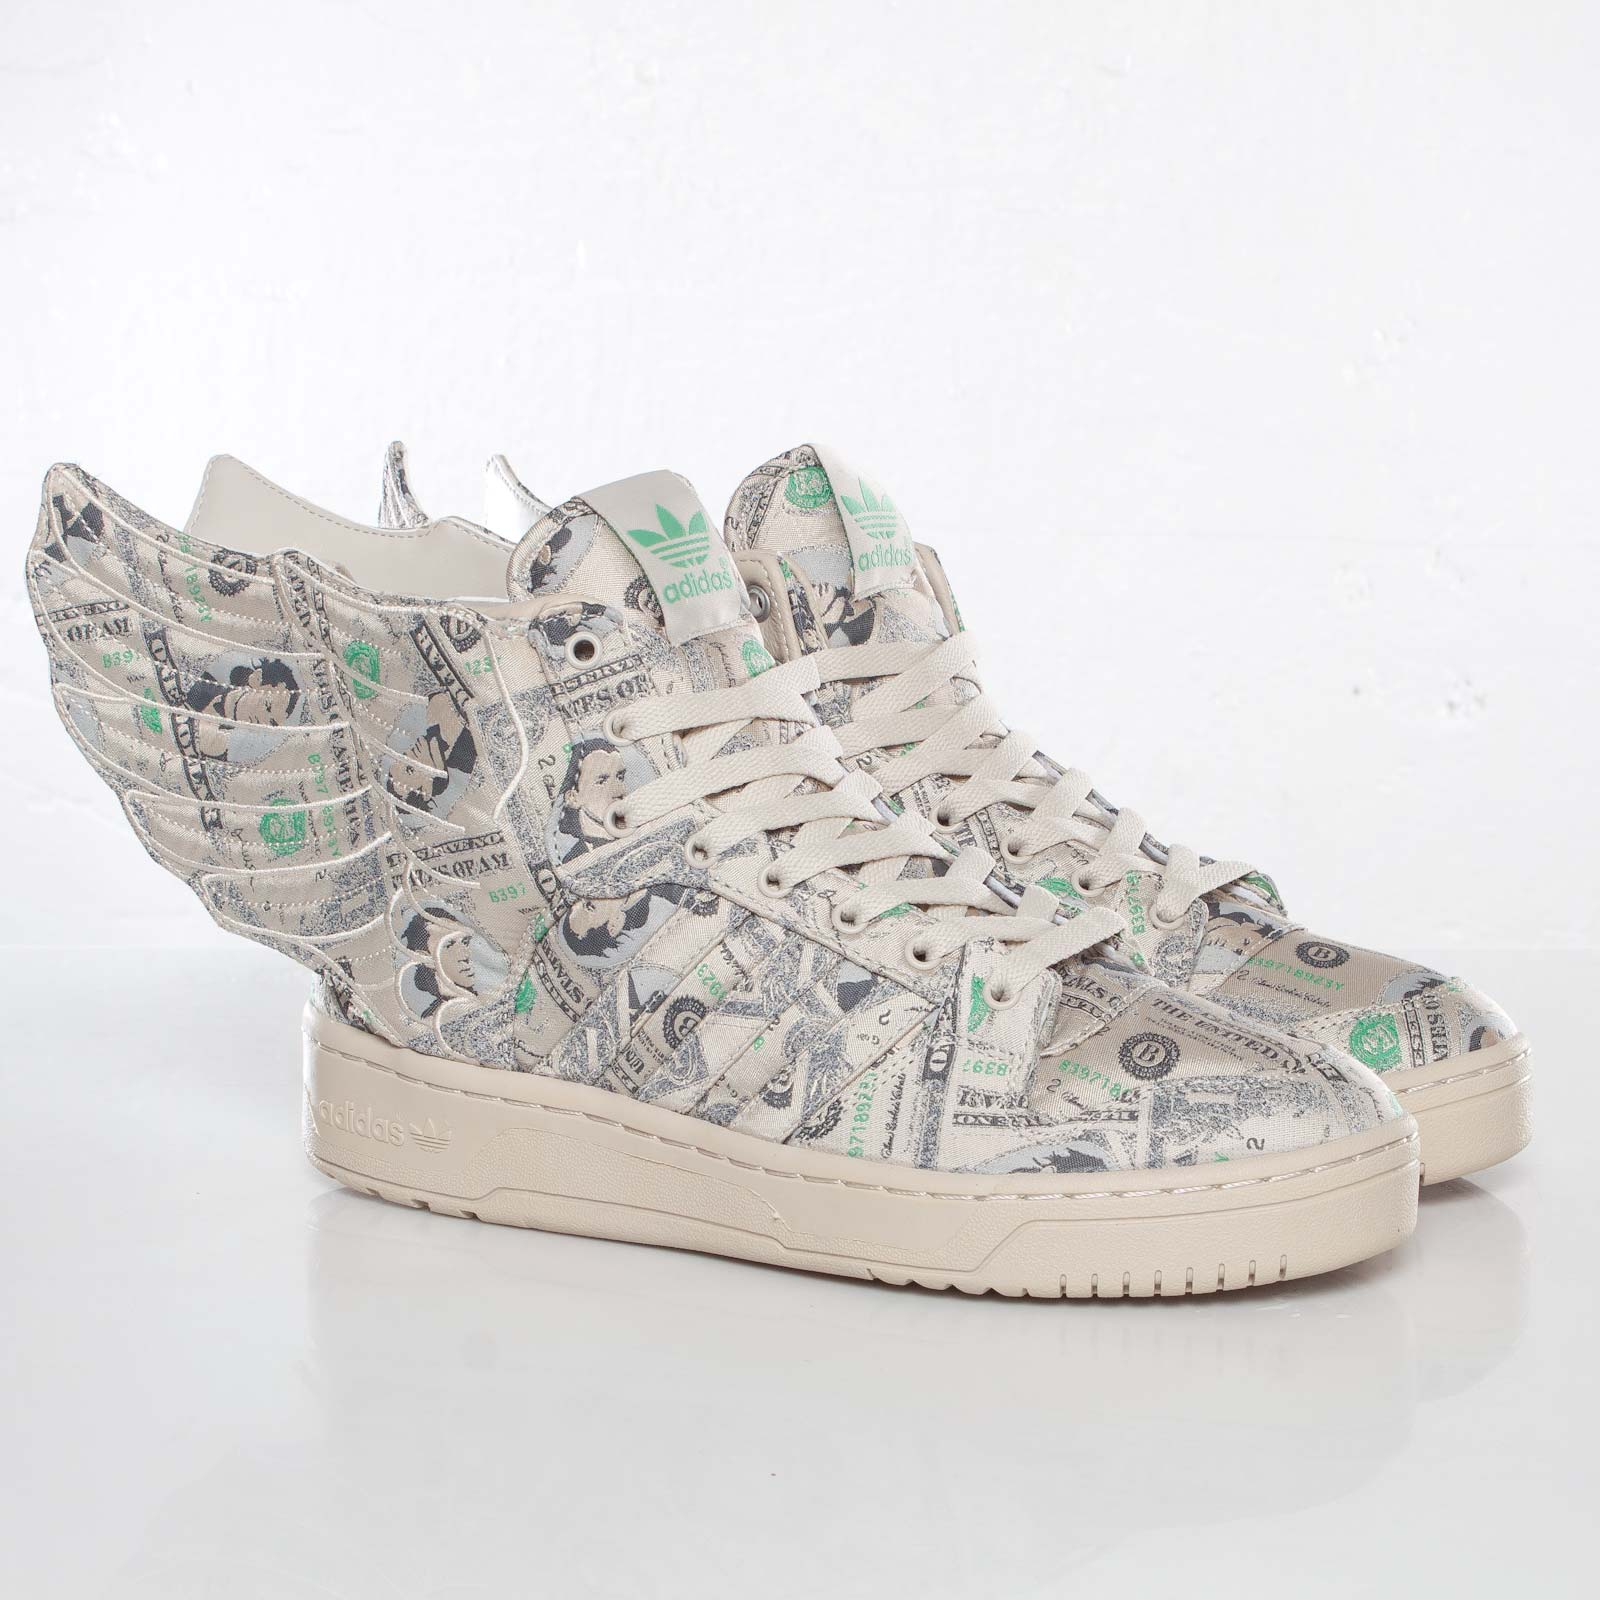 76df8ea1c adidas JS Wings 2.0 Money - G95773 - Sneakersnstuff